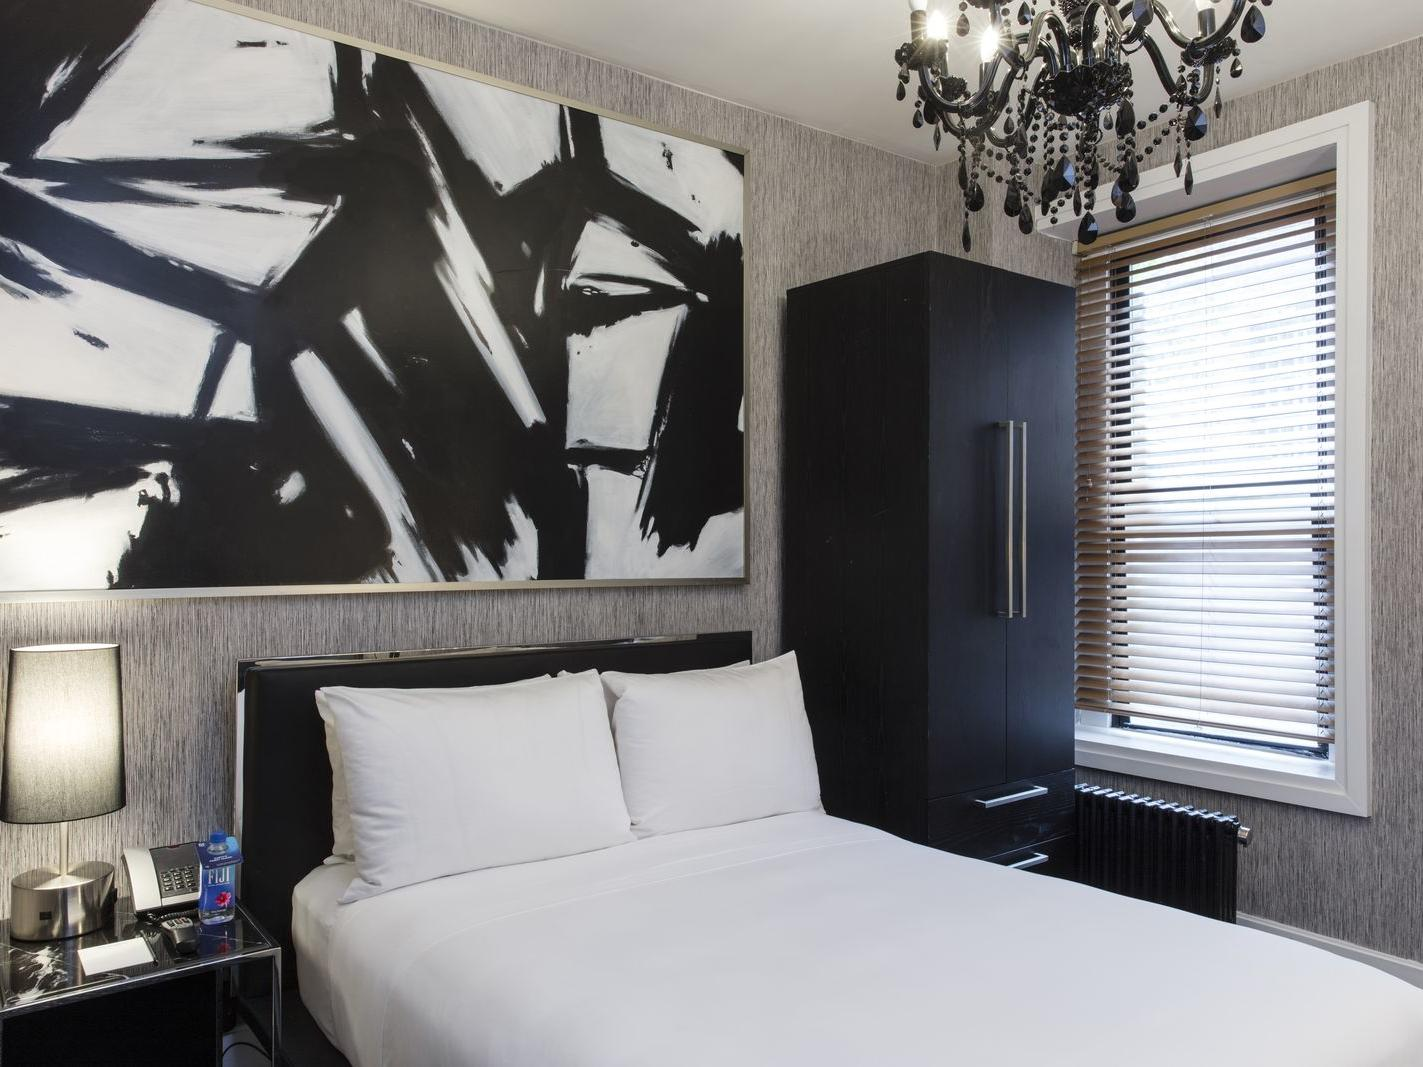 a large painting hangs above a bed